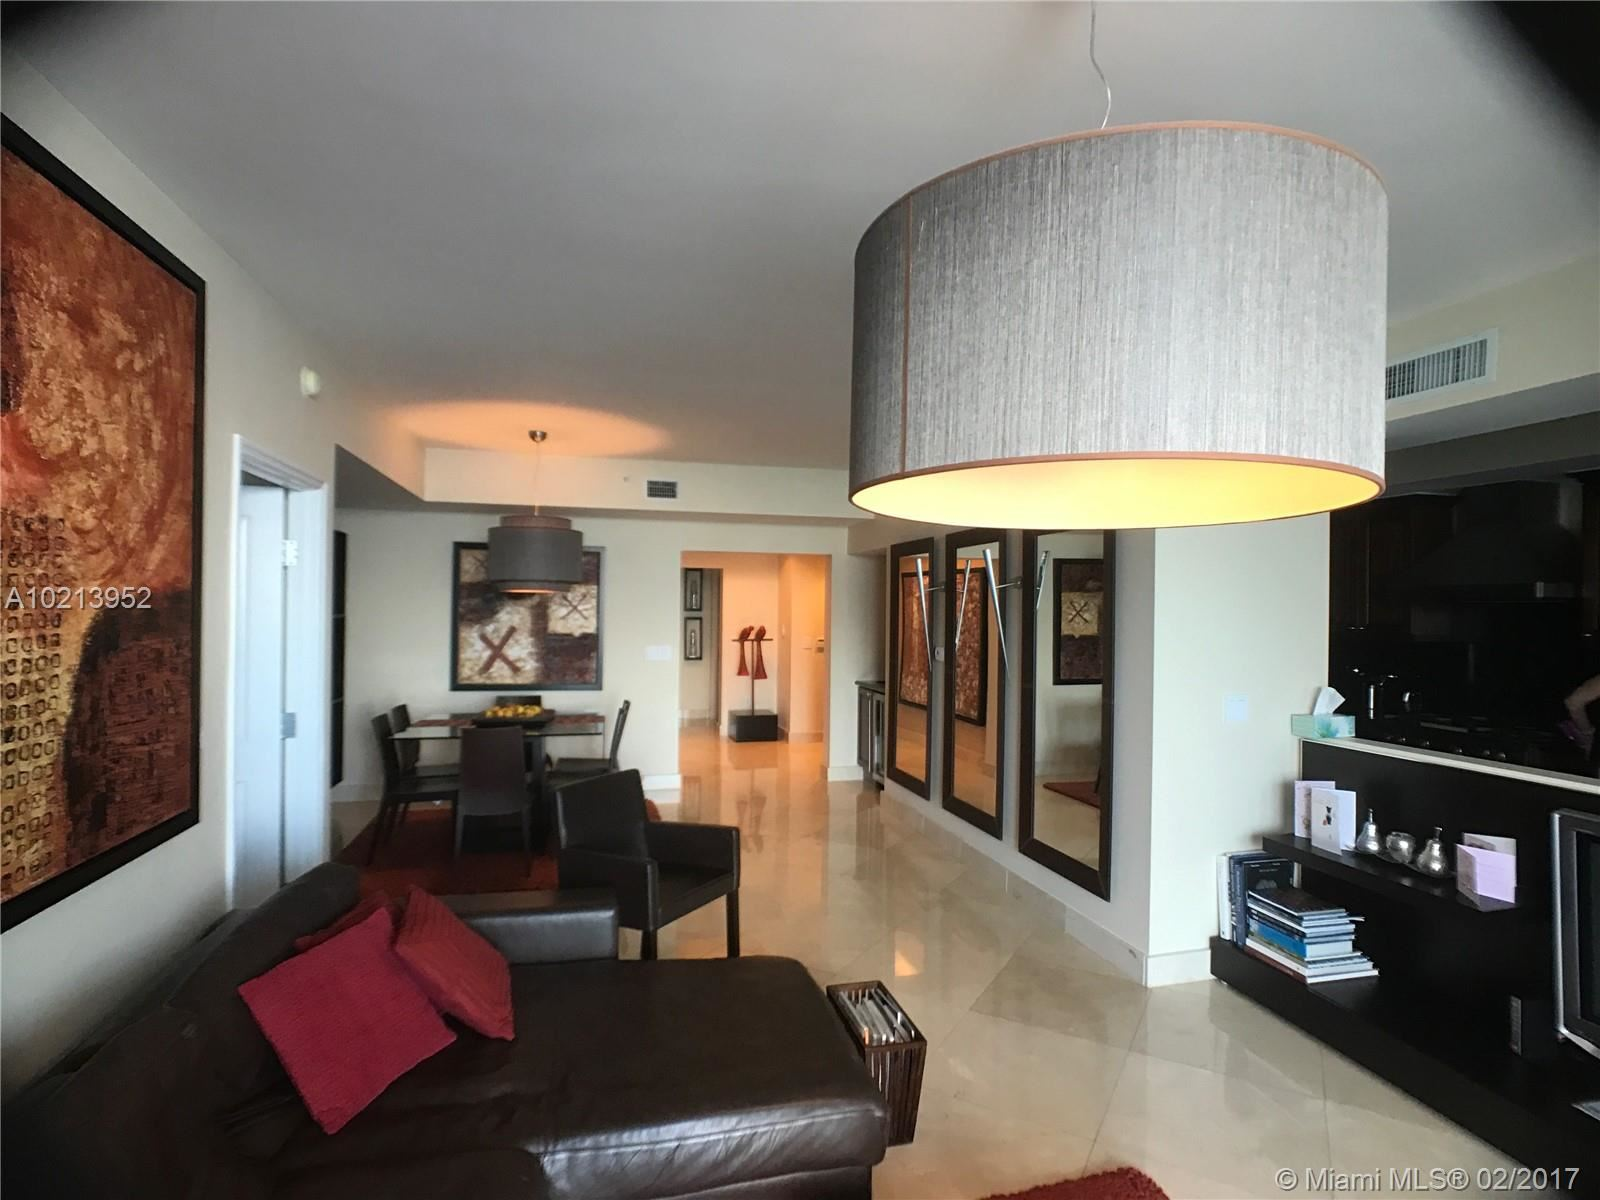 17875 Collins Ave #3102, Sunny Isles, FL 33160 - #: A10213952